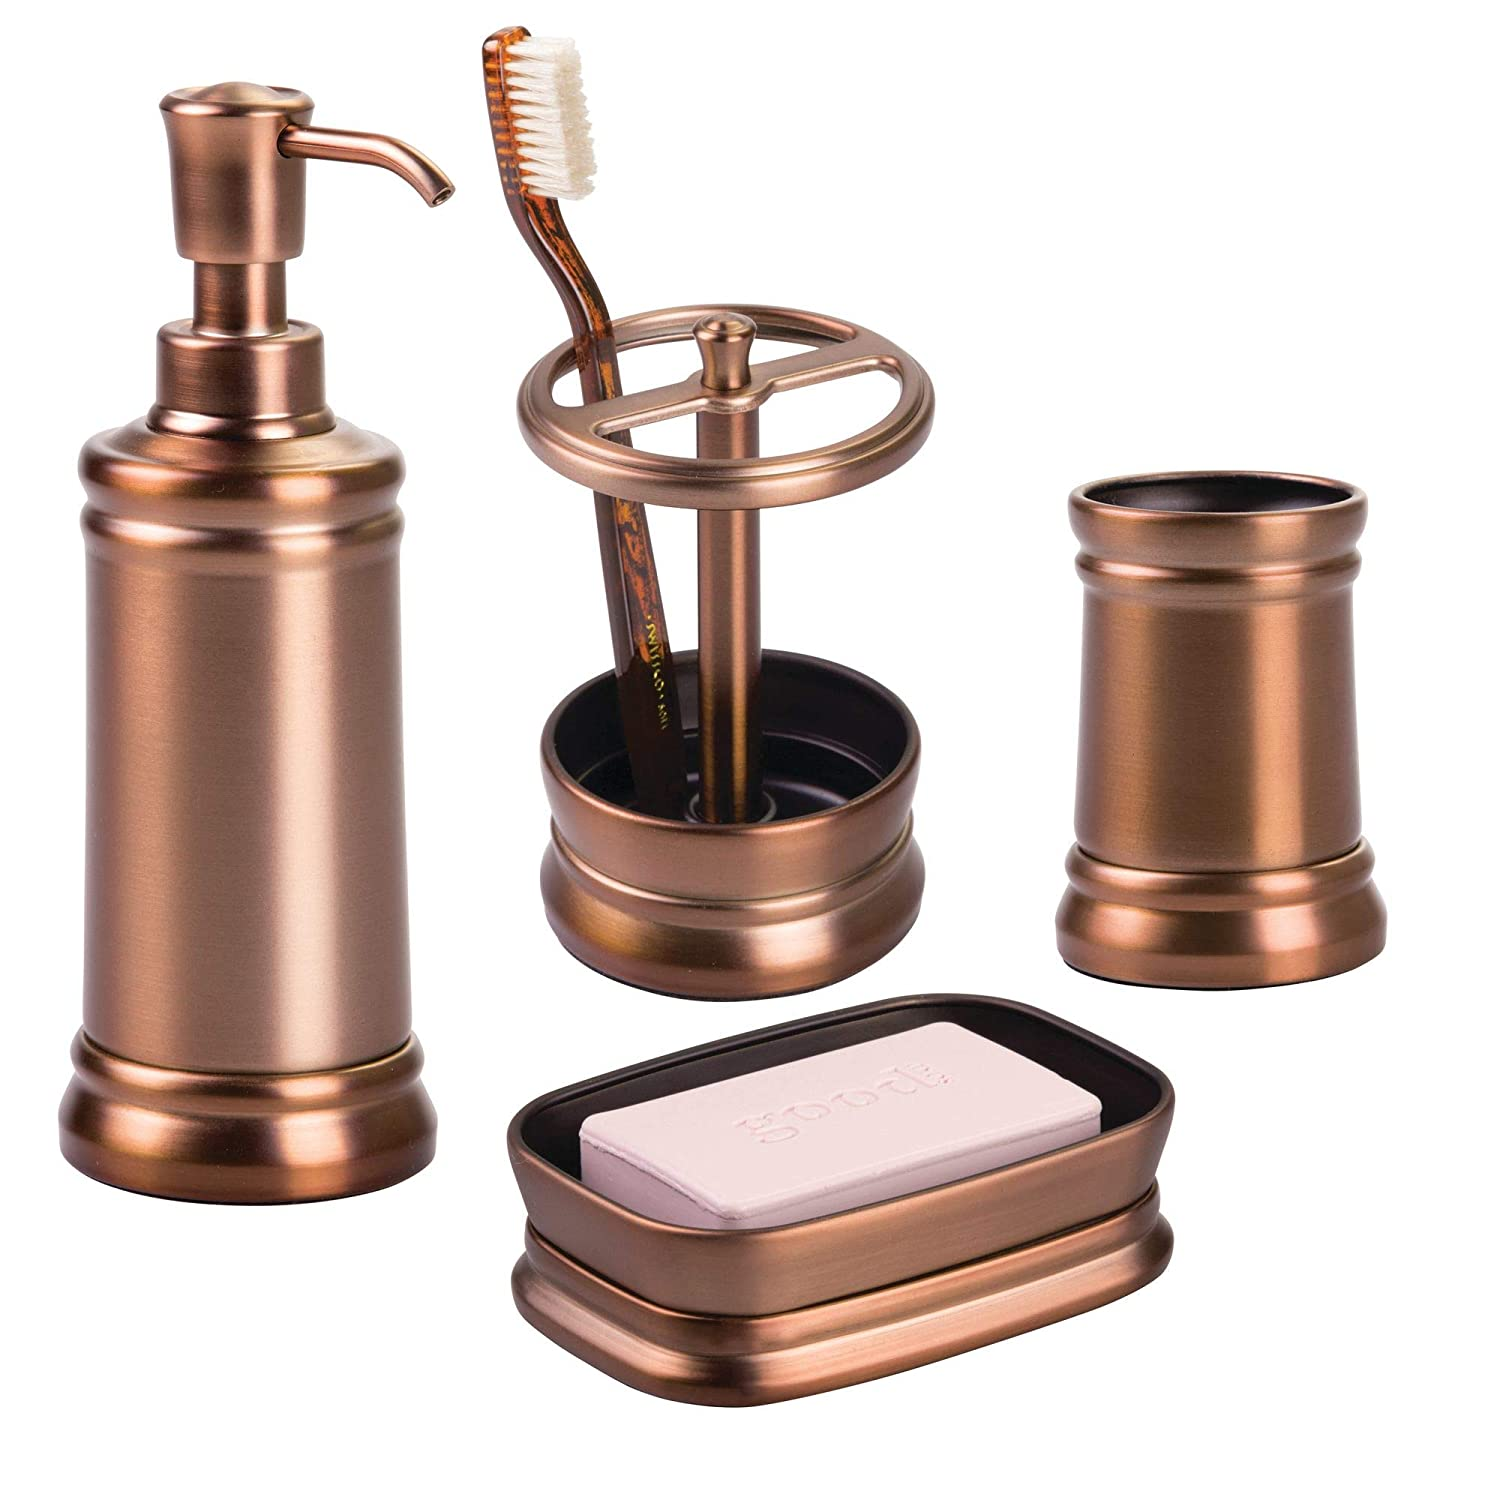 Venetian Bronze Bathroom Accessories Amazon.com: mDesign Bath Accessory Set, Soap Dispenser Pump, Toothbrush  Holder, Tumbler, Soap Dish- 4 Pieces, Venetian Bronze: Home u0026 Kitchen